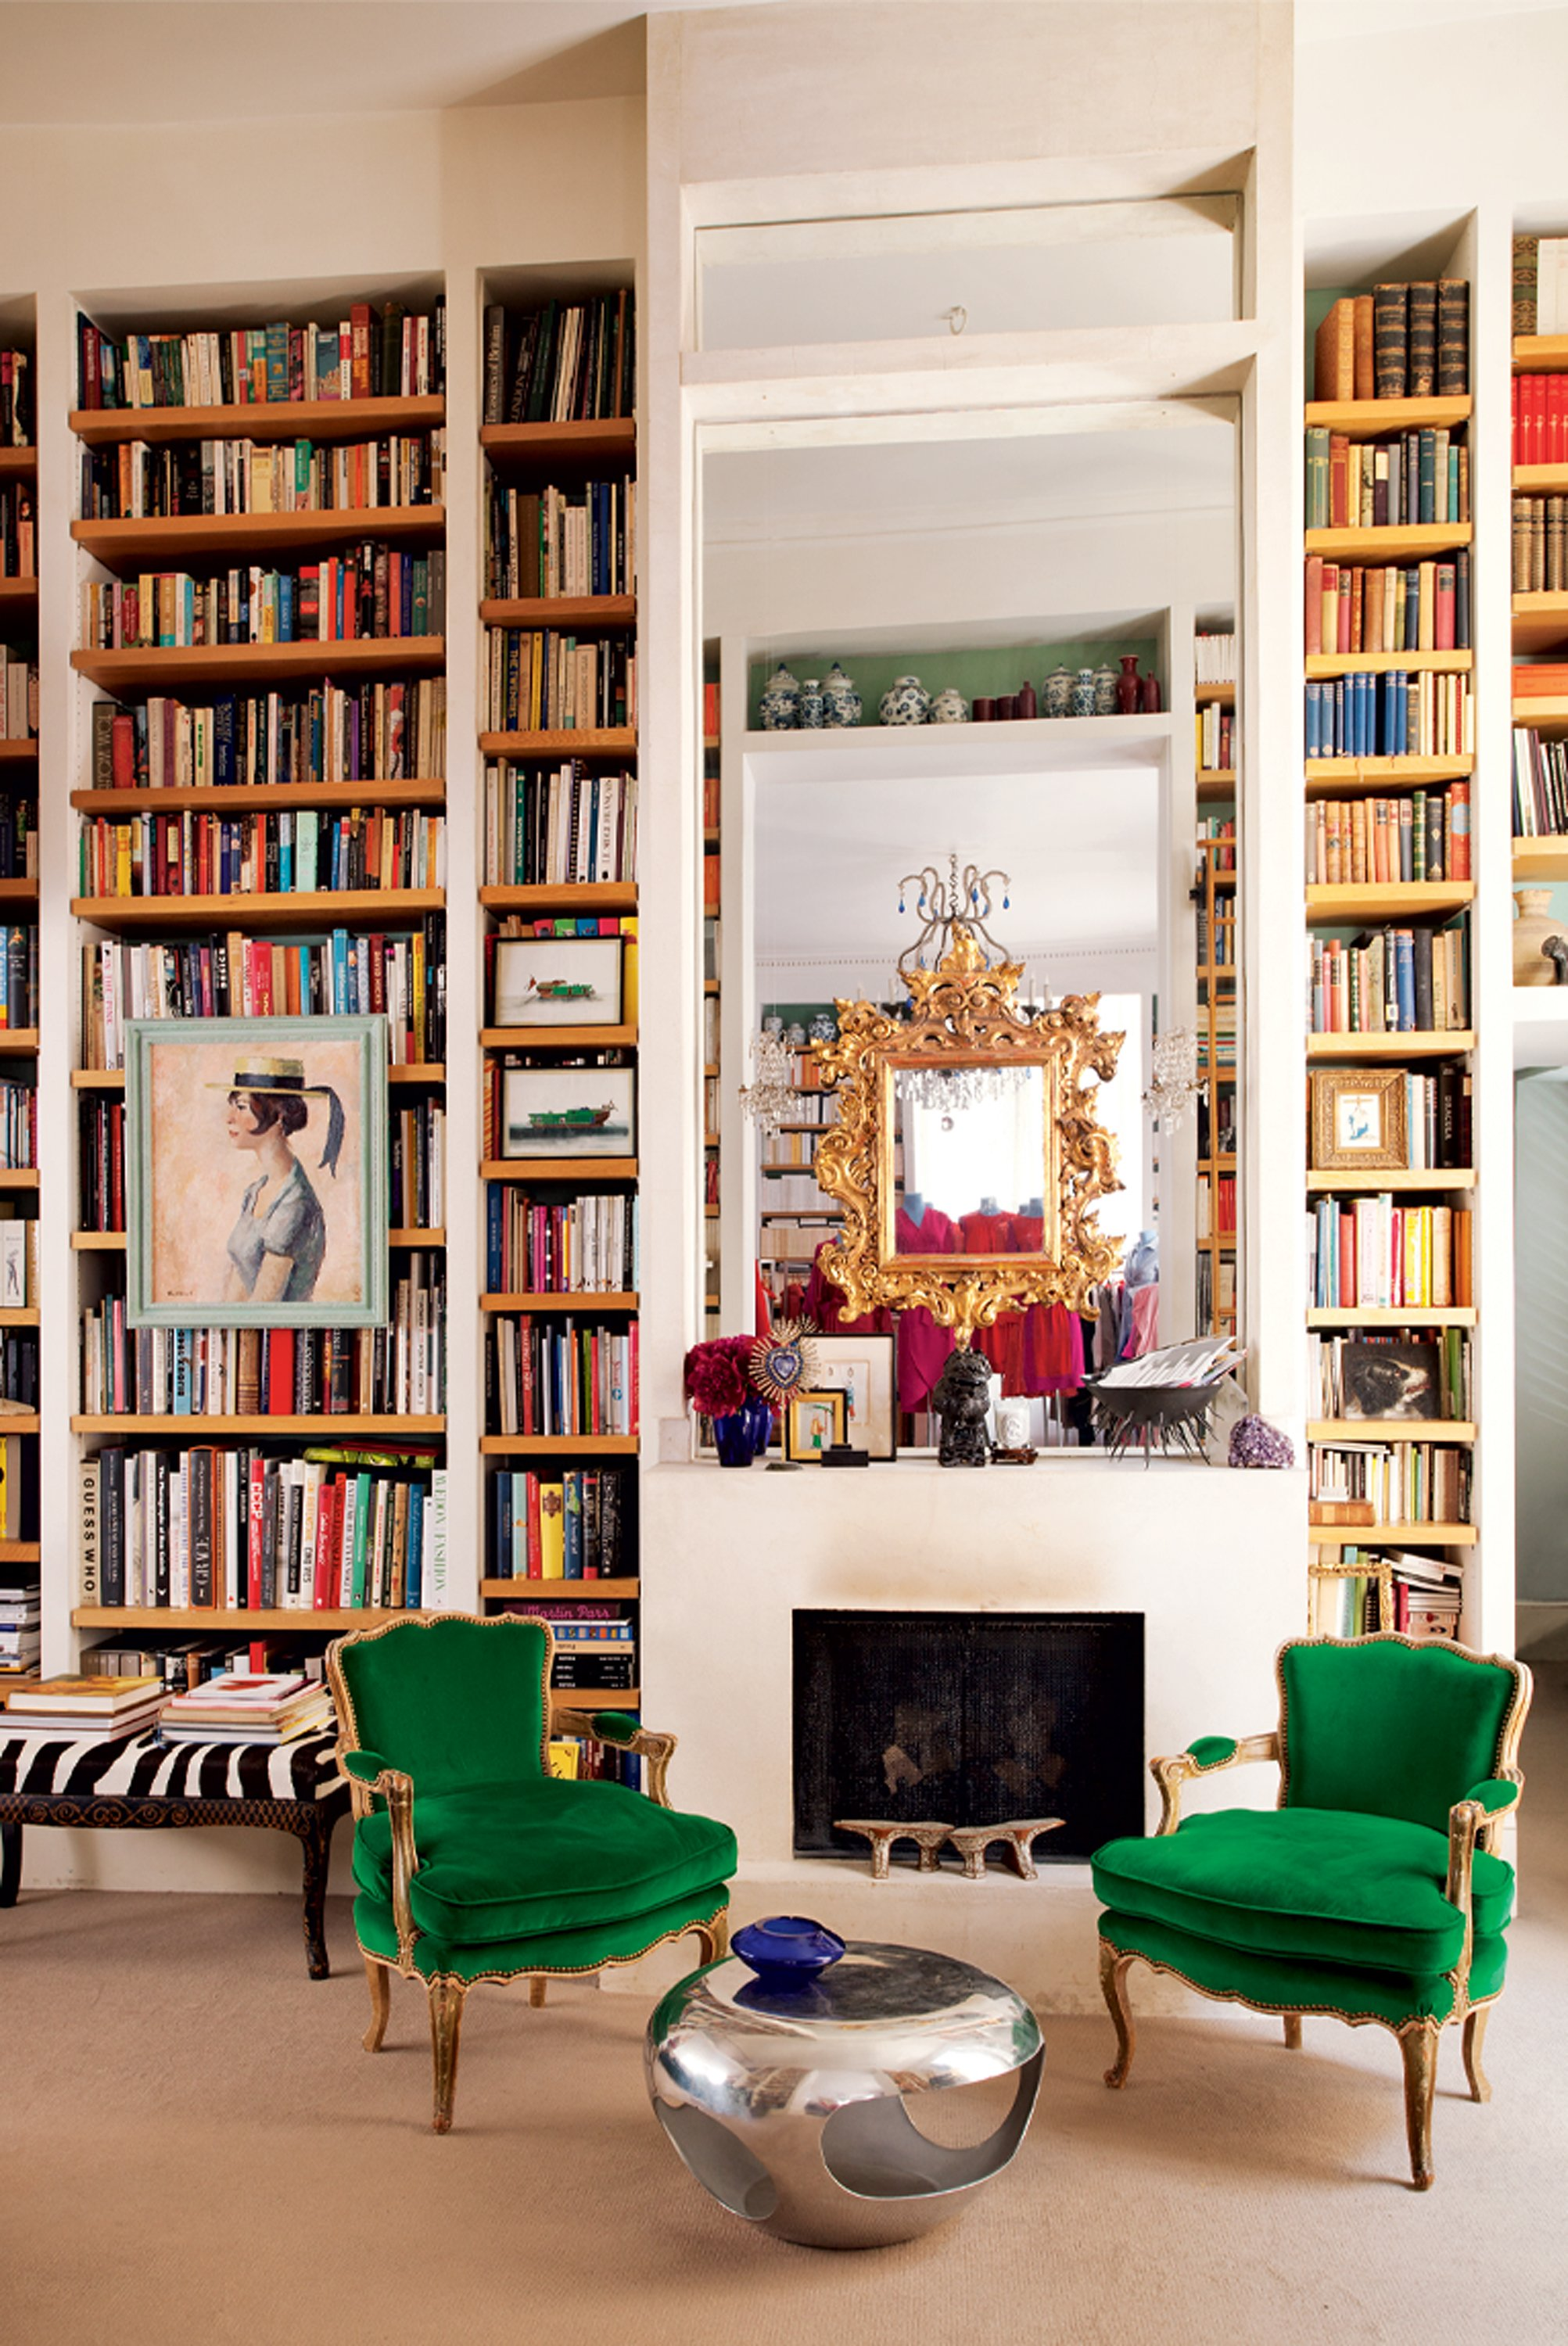 Make A Living Room A Library: Get Some Interior Inspiration From Instagram's 7 Most